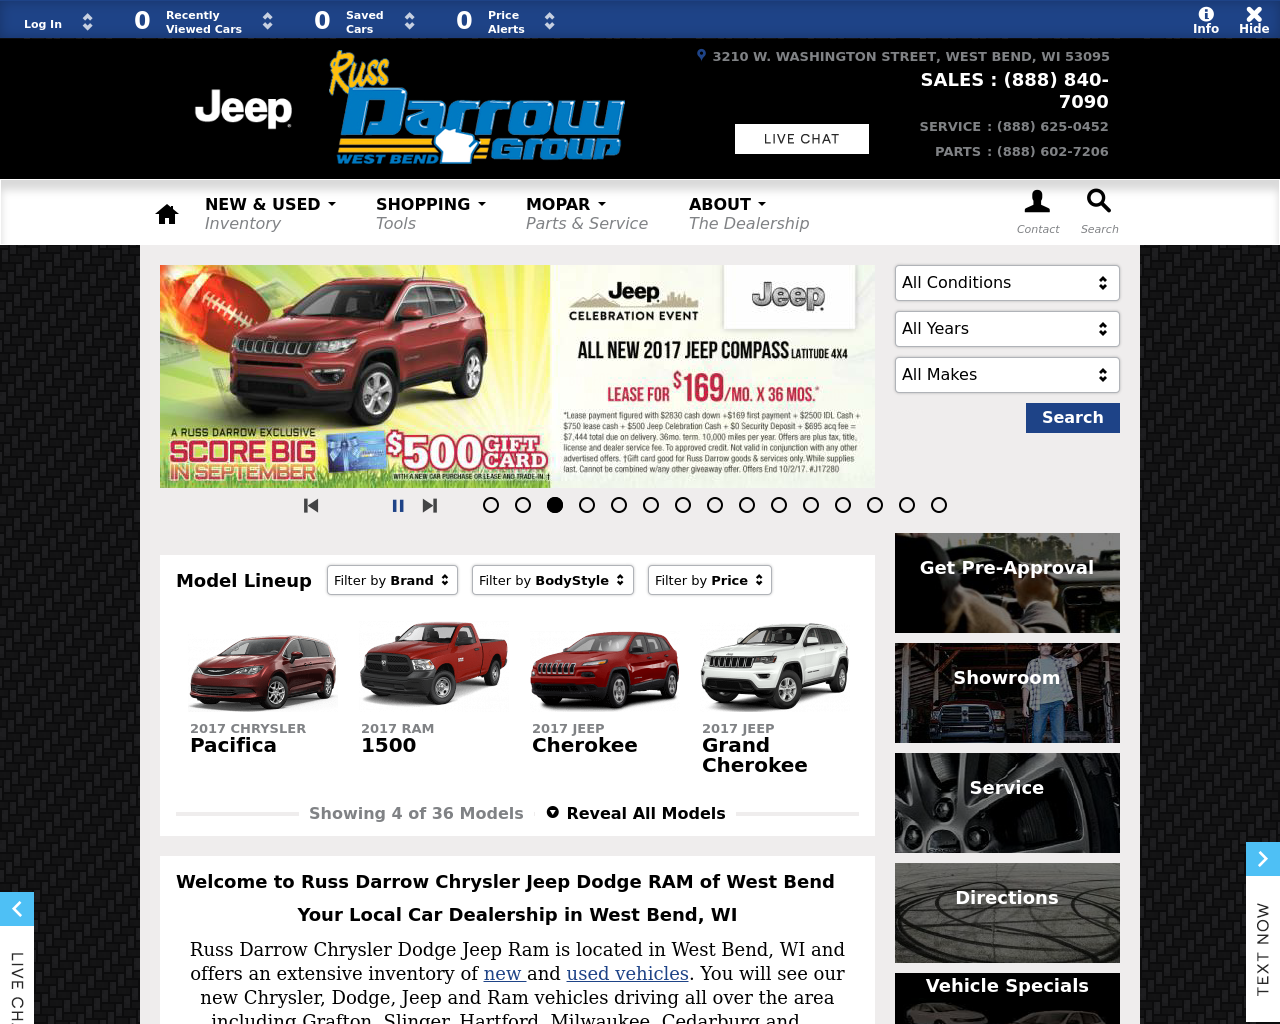 Russ-Darrow-Chrysler-Dodge-Jeep-RAM-Of-West-Bend-Advertising-Reviews-Pricing